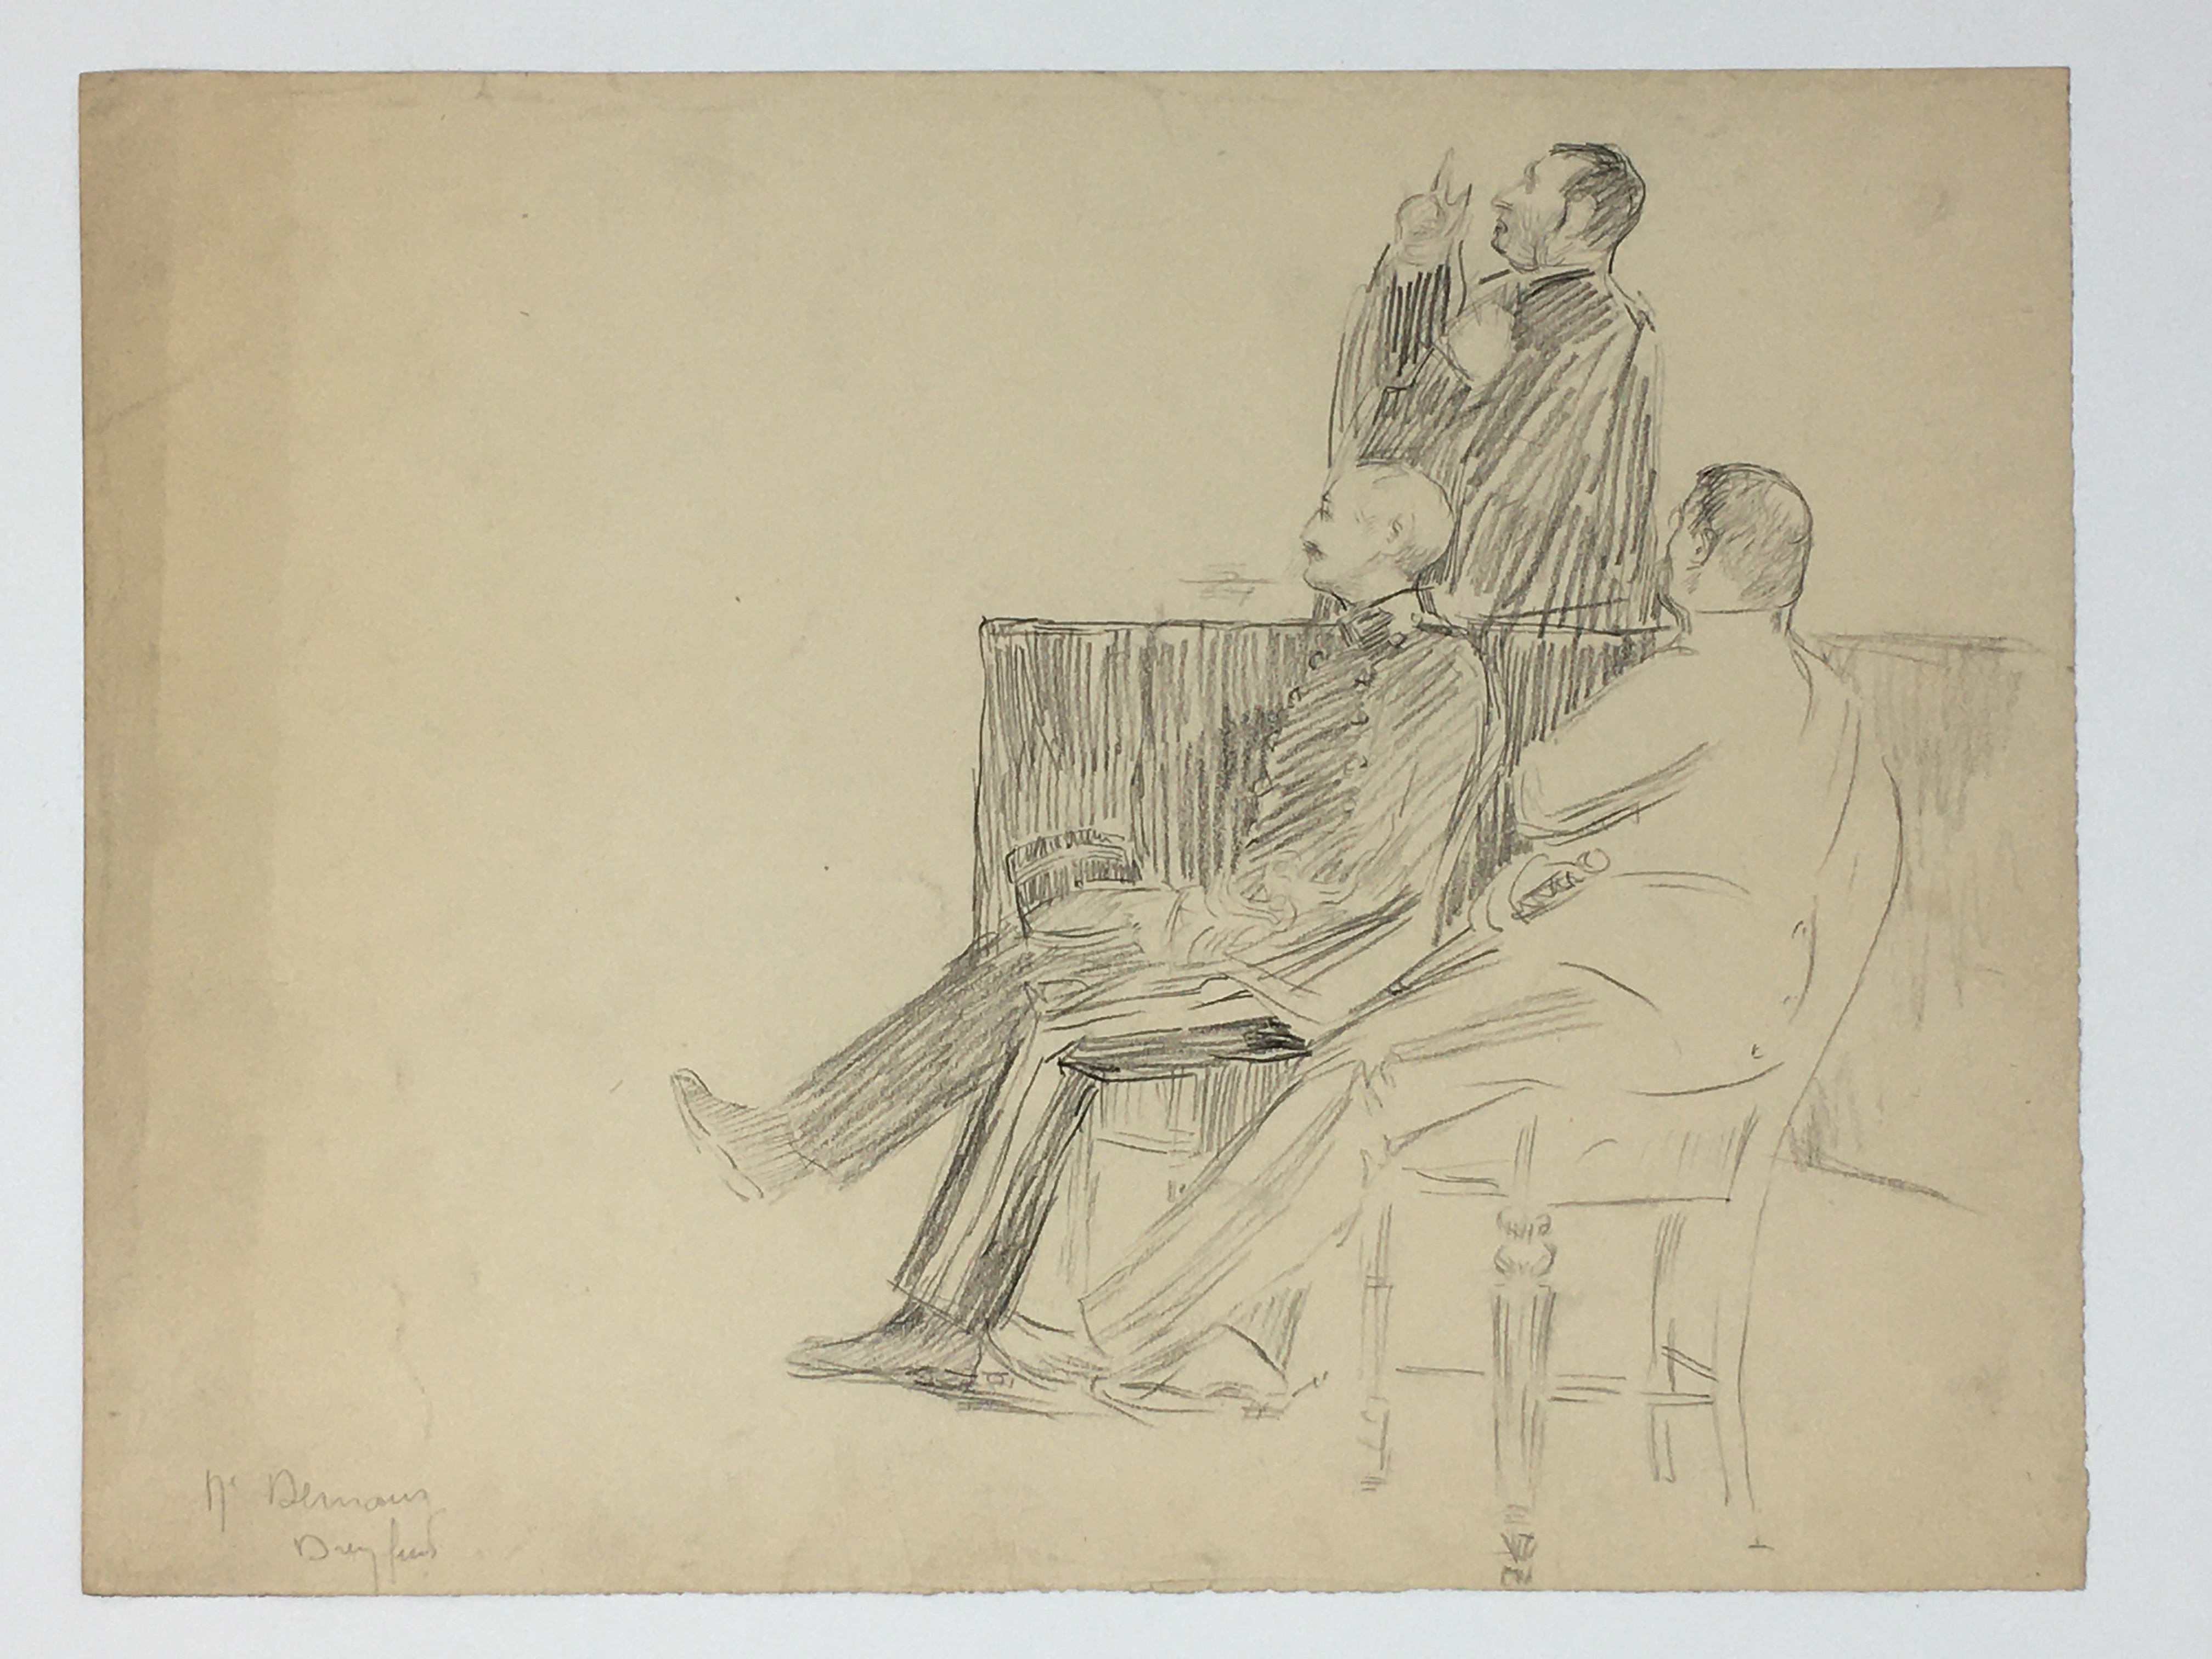 J'Accuse Newspaper, Emile Zola Quote, Signed Dreyfus Portrait, Rare Trial Drawings & Schwartzkoppen - Image 25 of 74